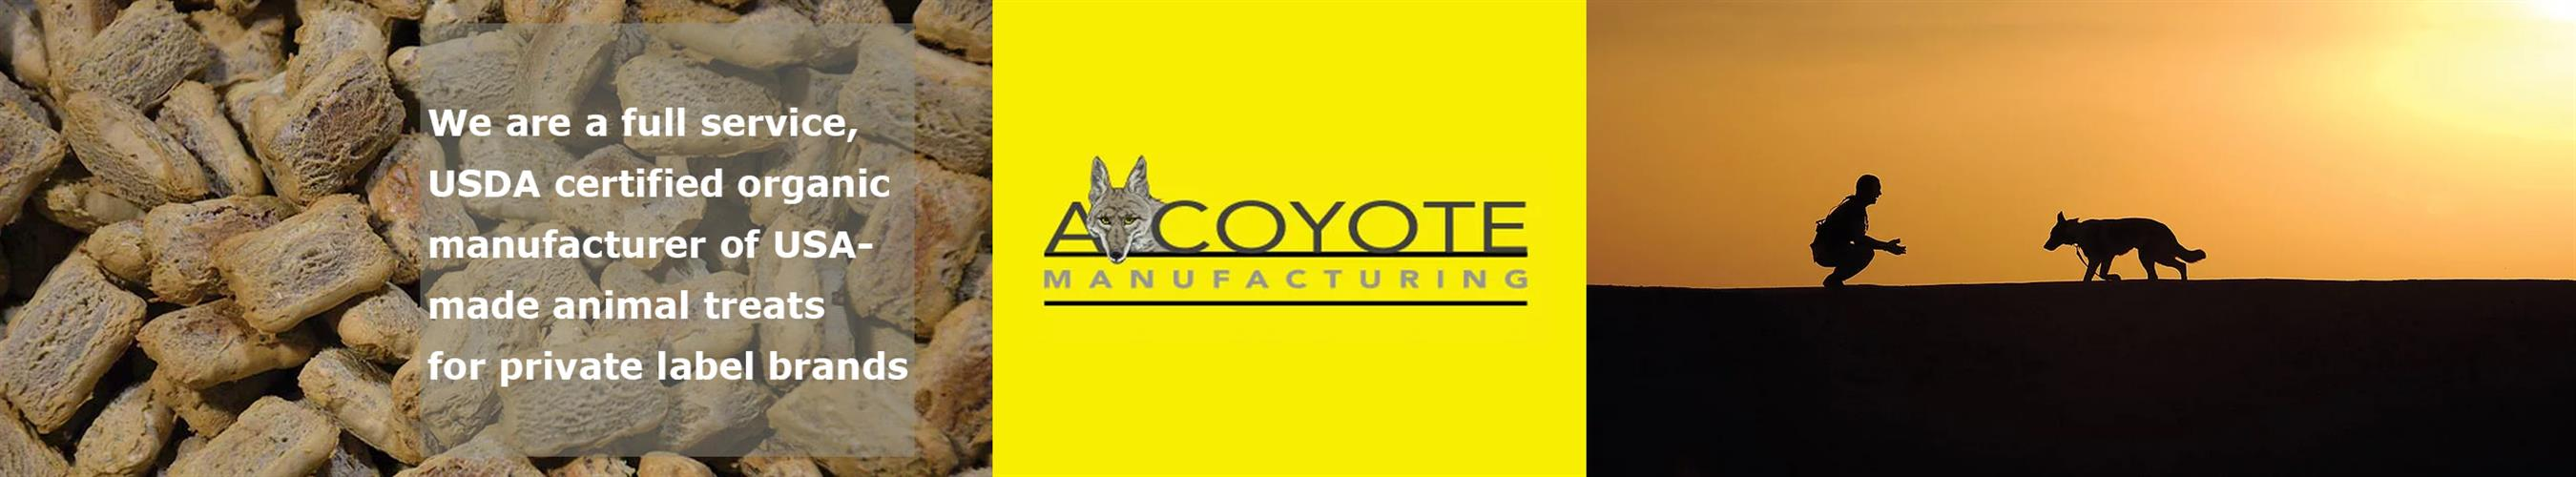 A. Coyote Manufacturing (Max & Ruffy's)